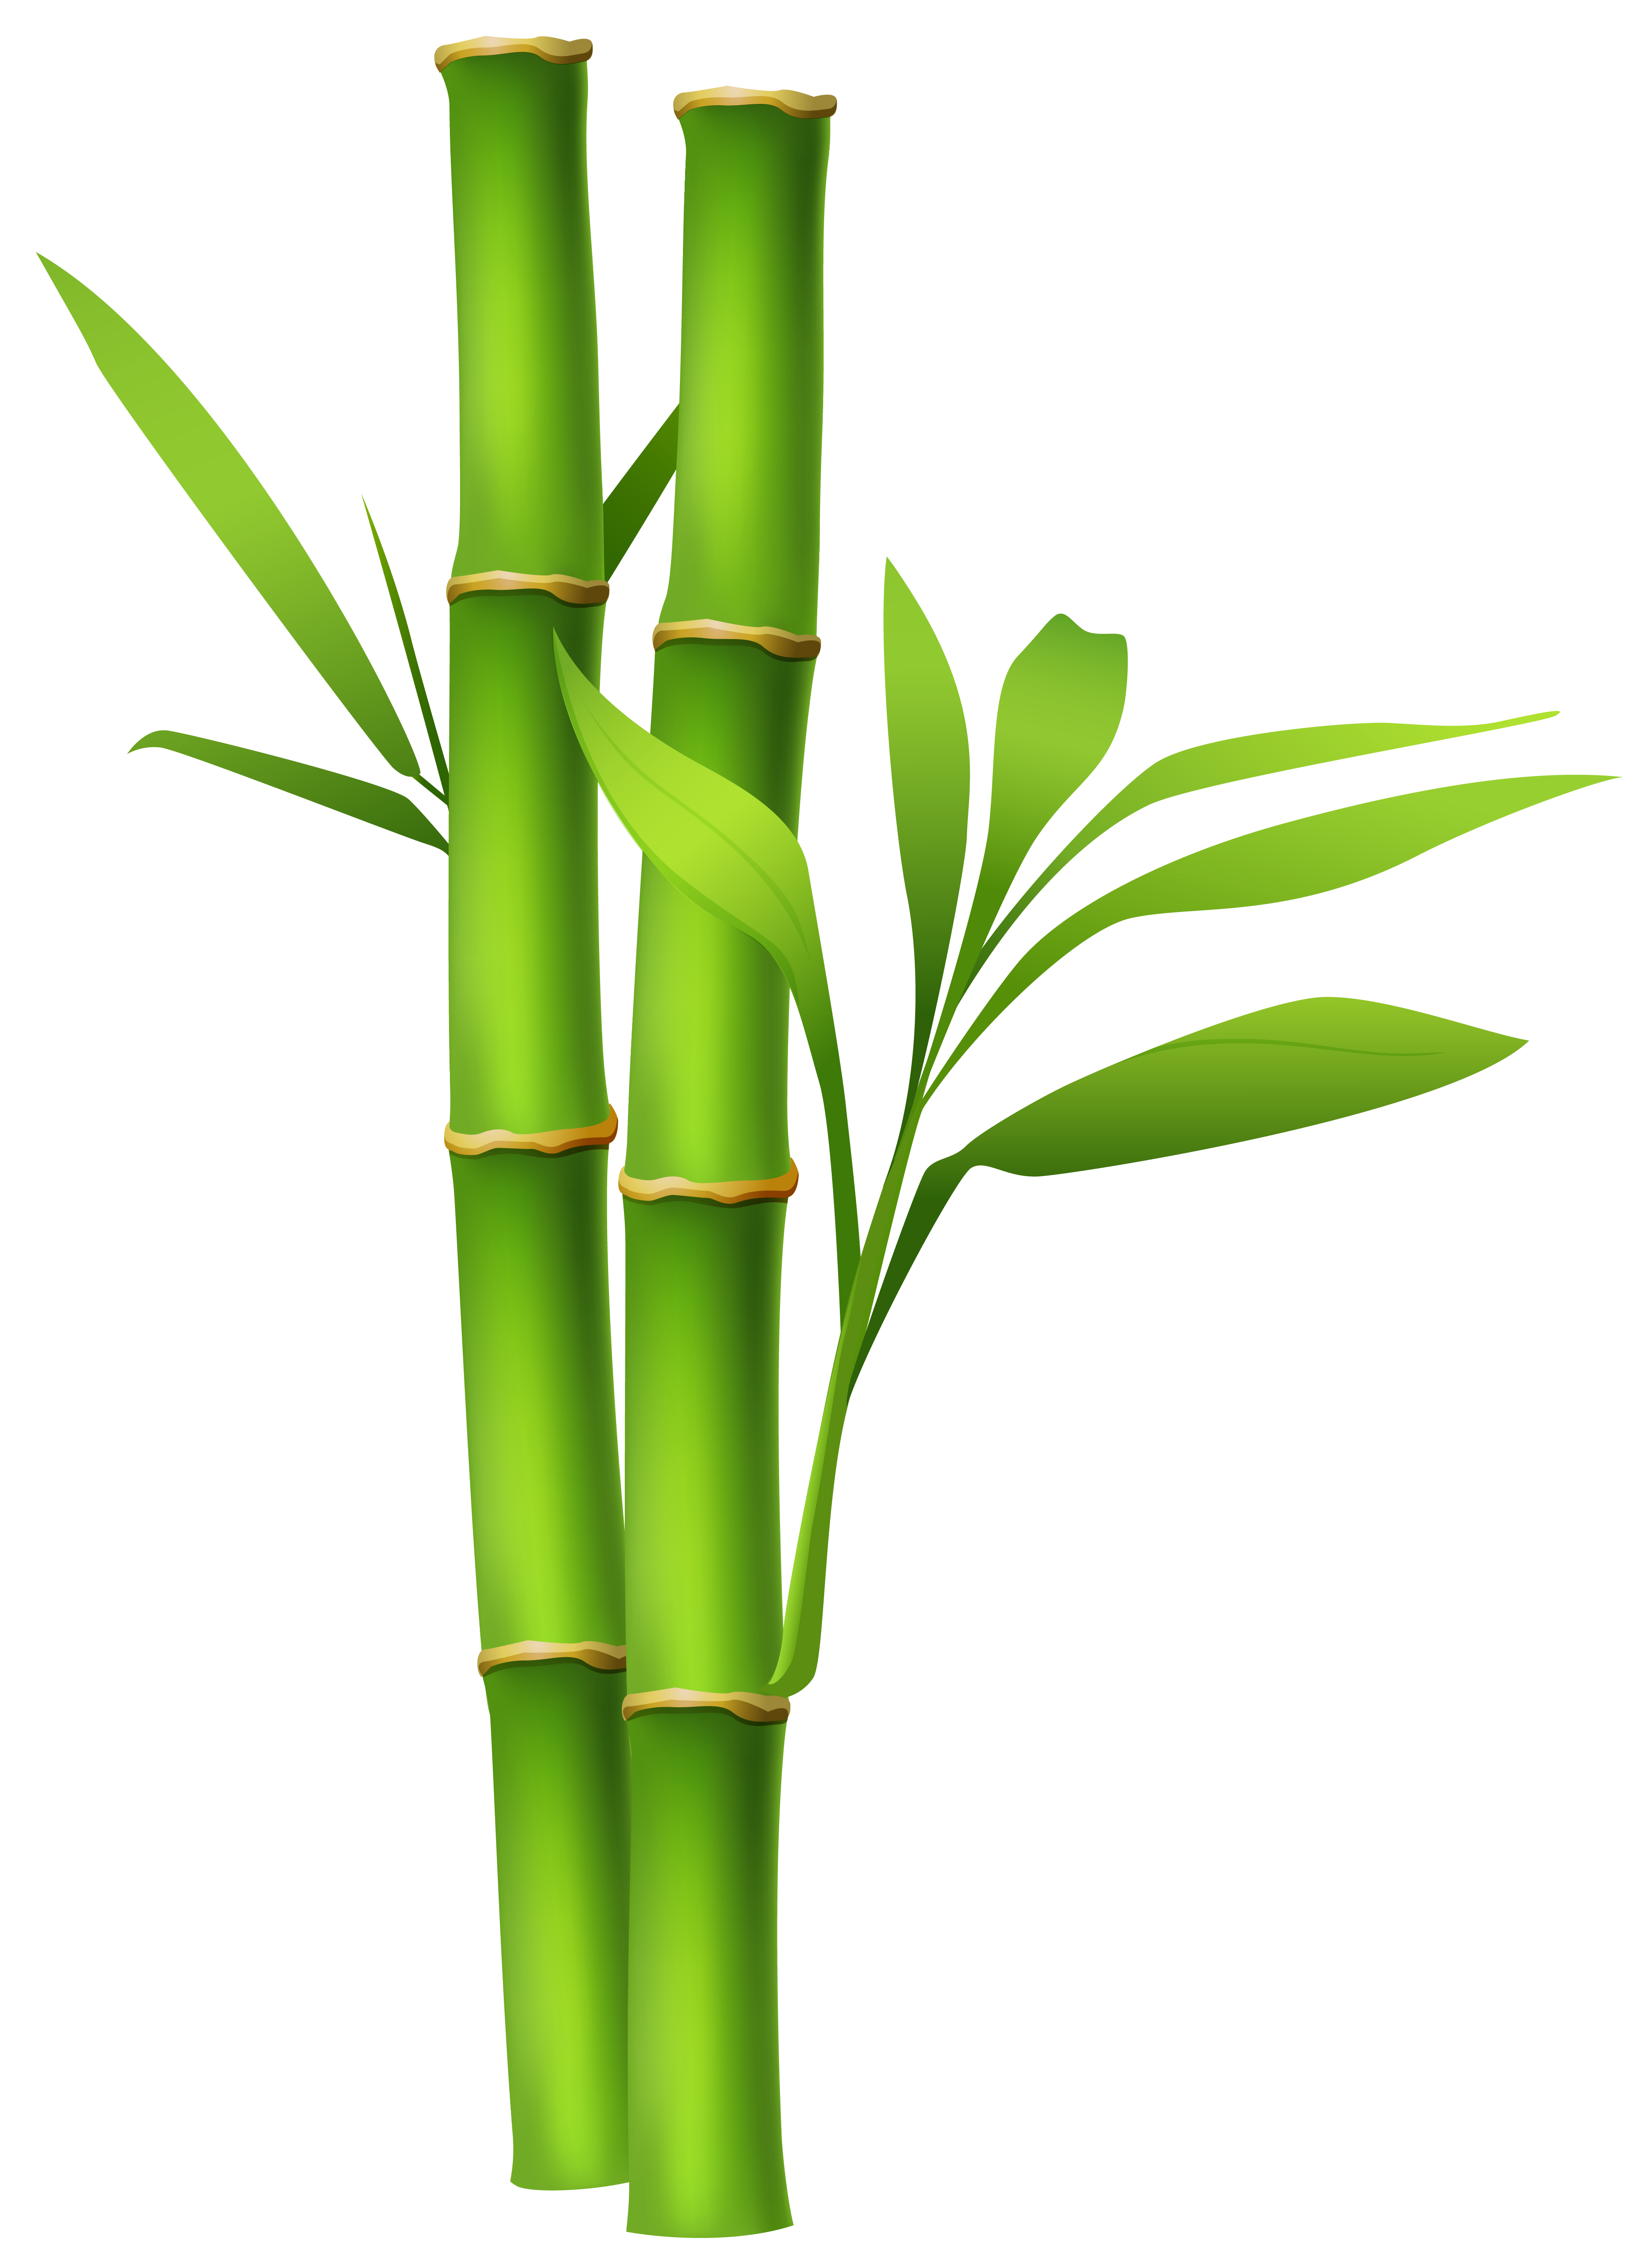 jpg library stock Png image gallery yopriceville. Bamboo clipart.